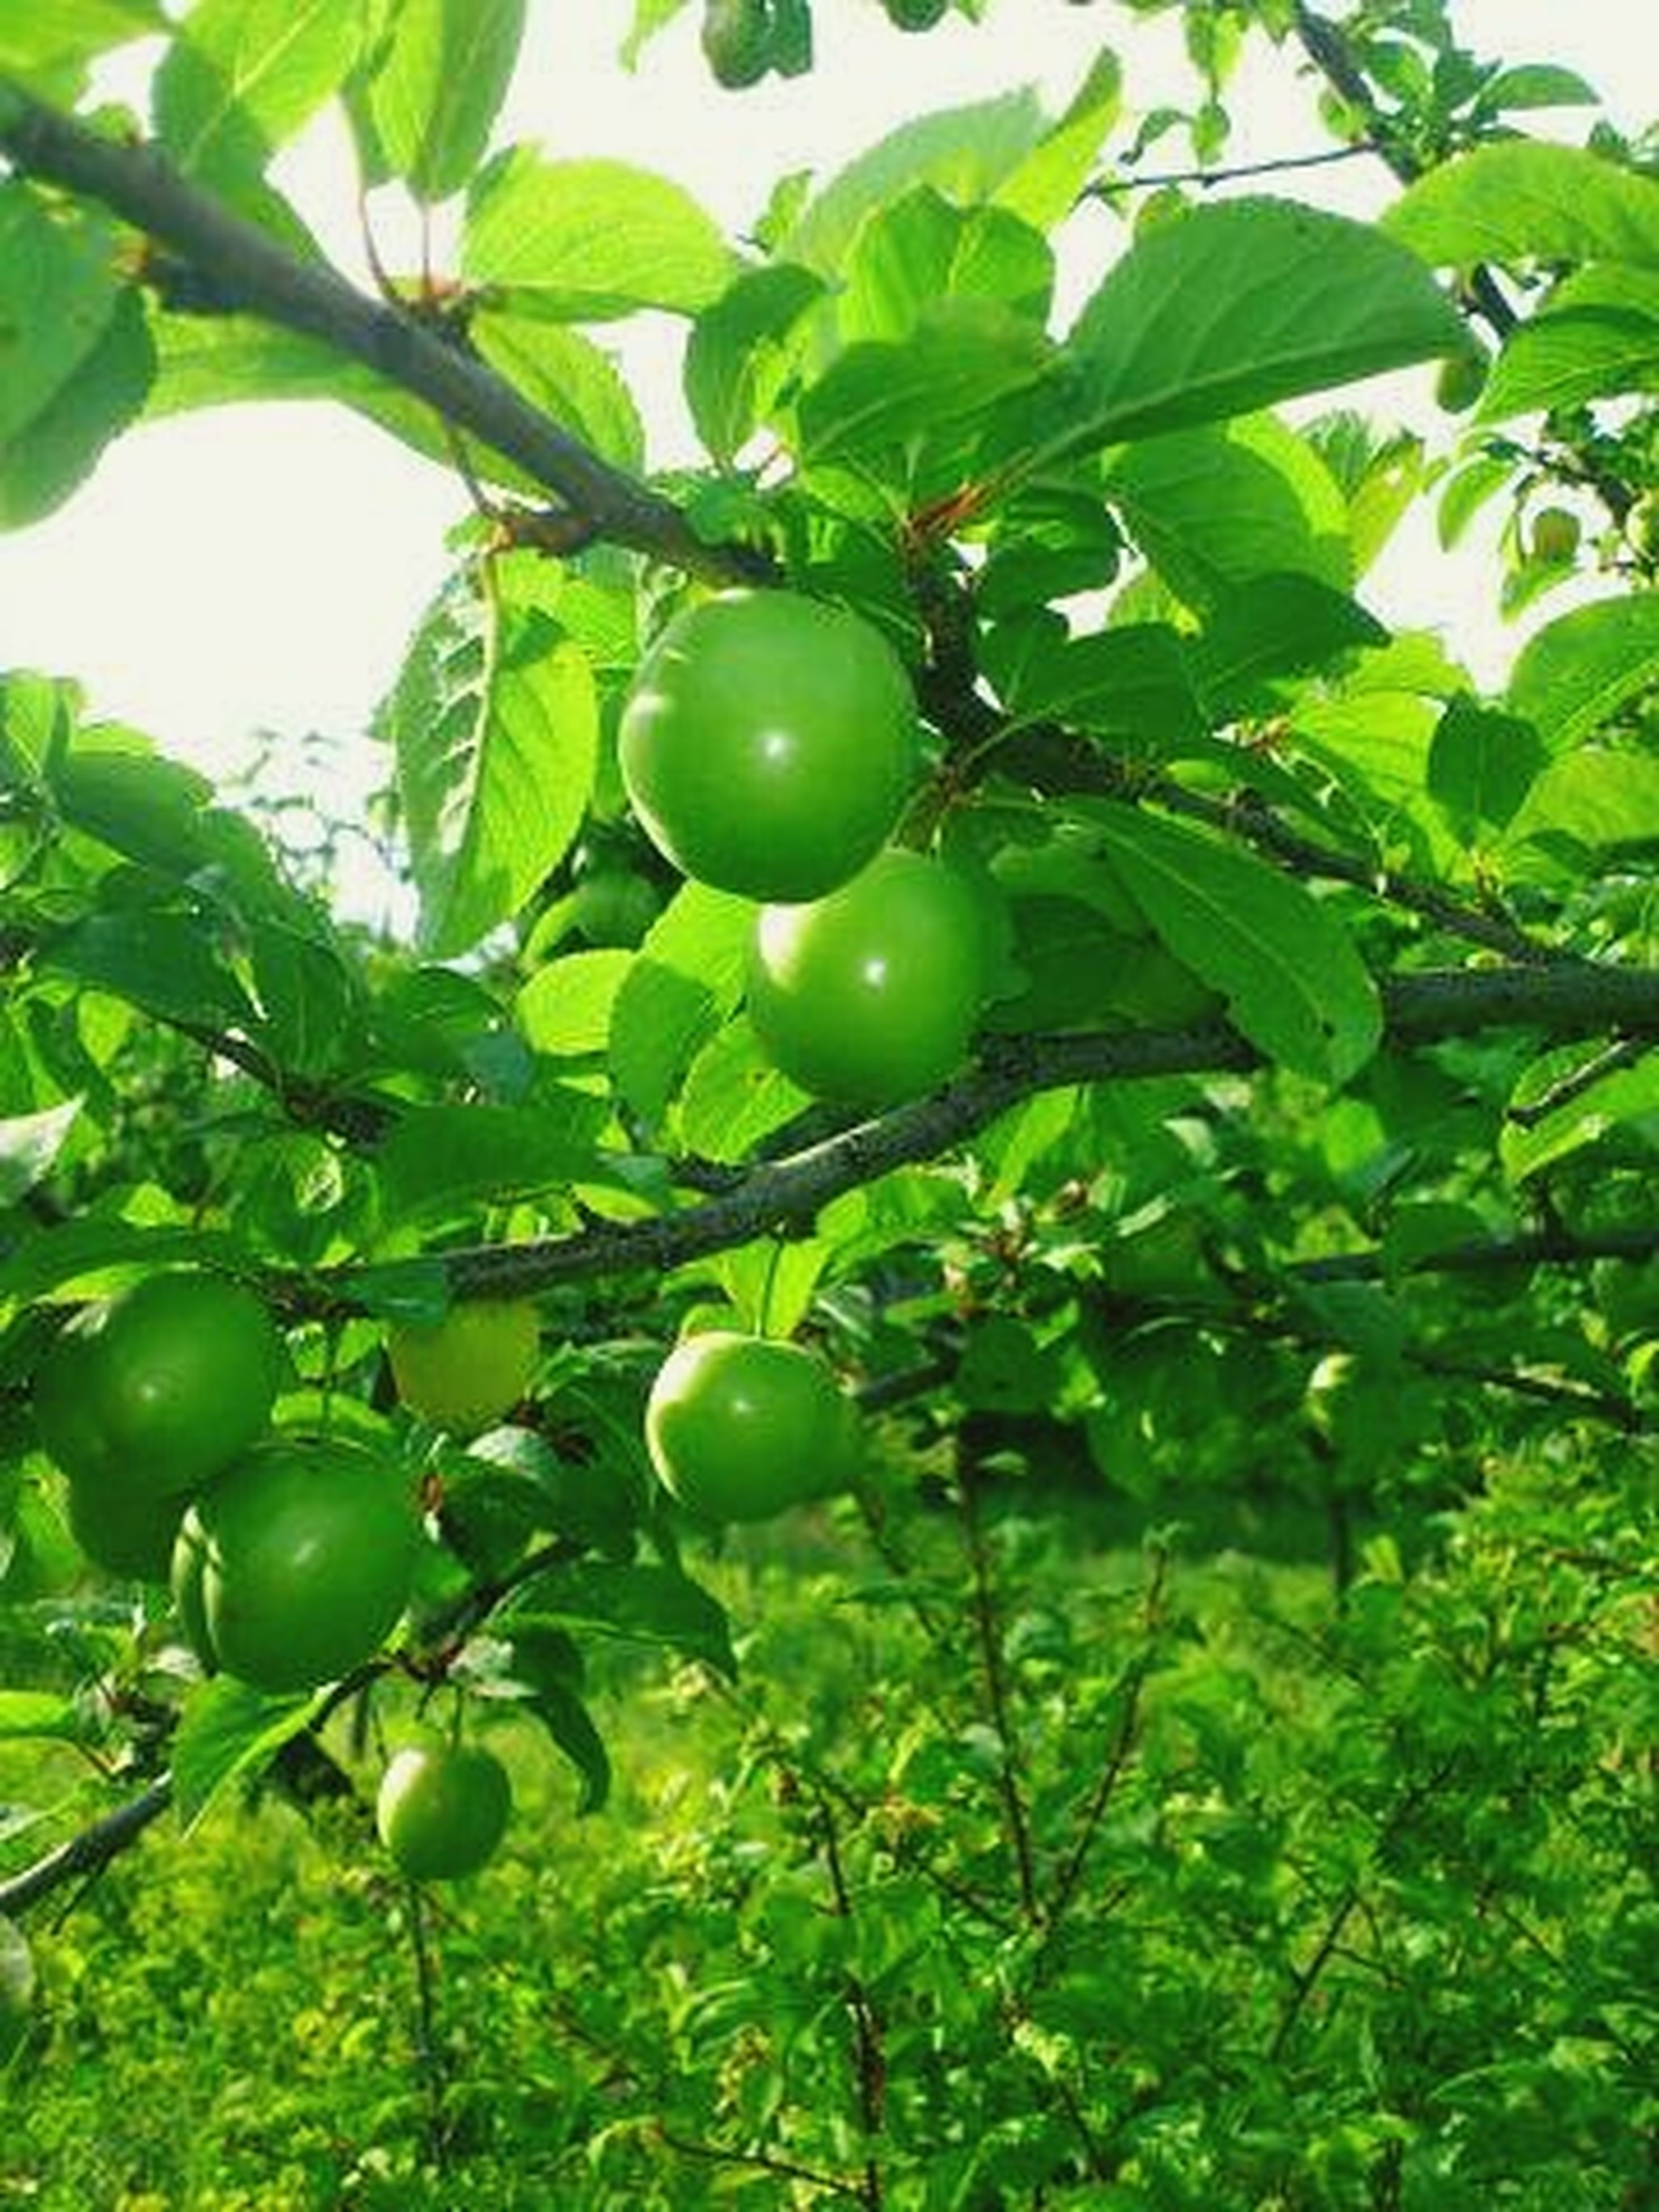 fruit, food and drink, tree, food, healthy eating, growth, freshness, green color, hanging, branch, agriculture, leaf, ripe, low angle view, vineyard, grape, close-up, nature, apple, apple - fruit